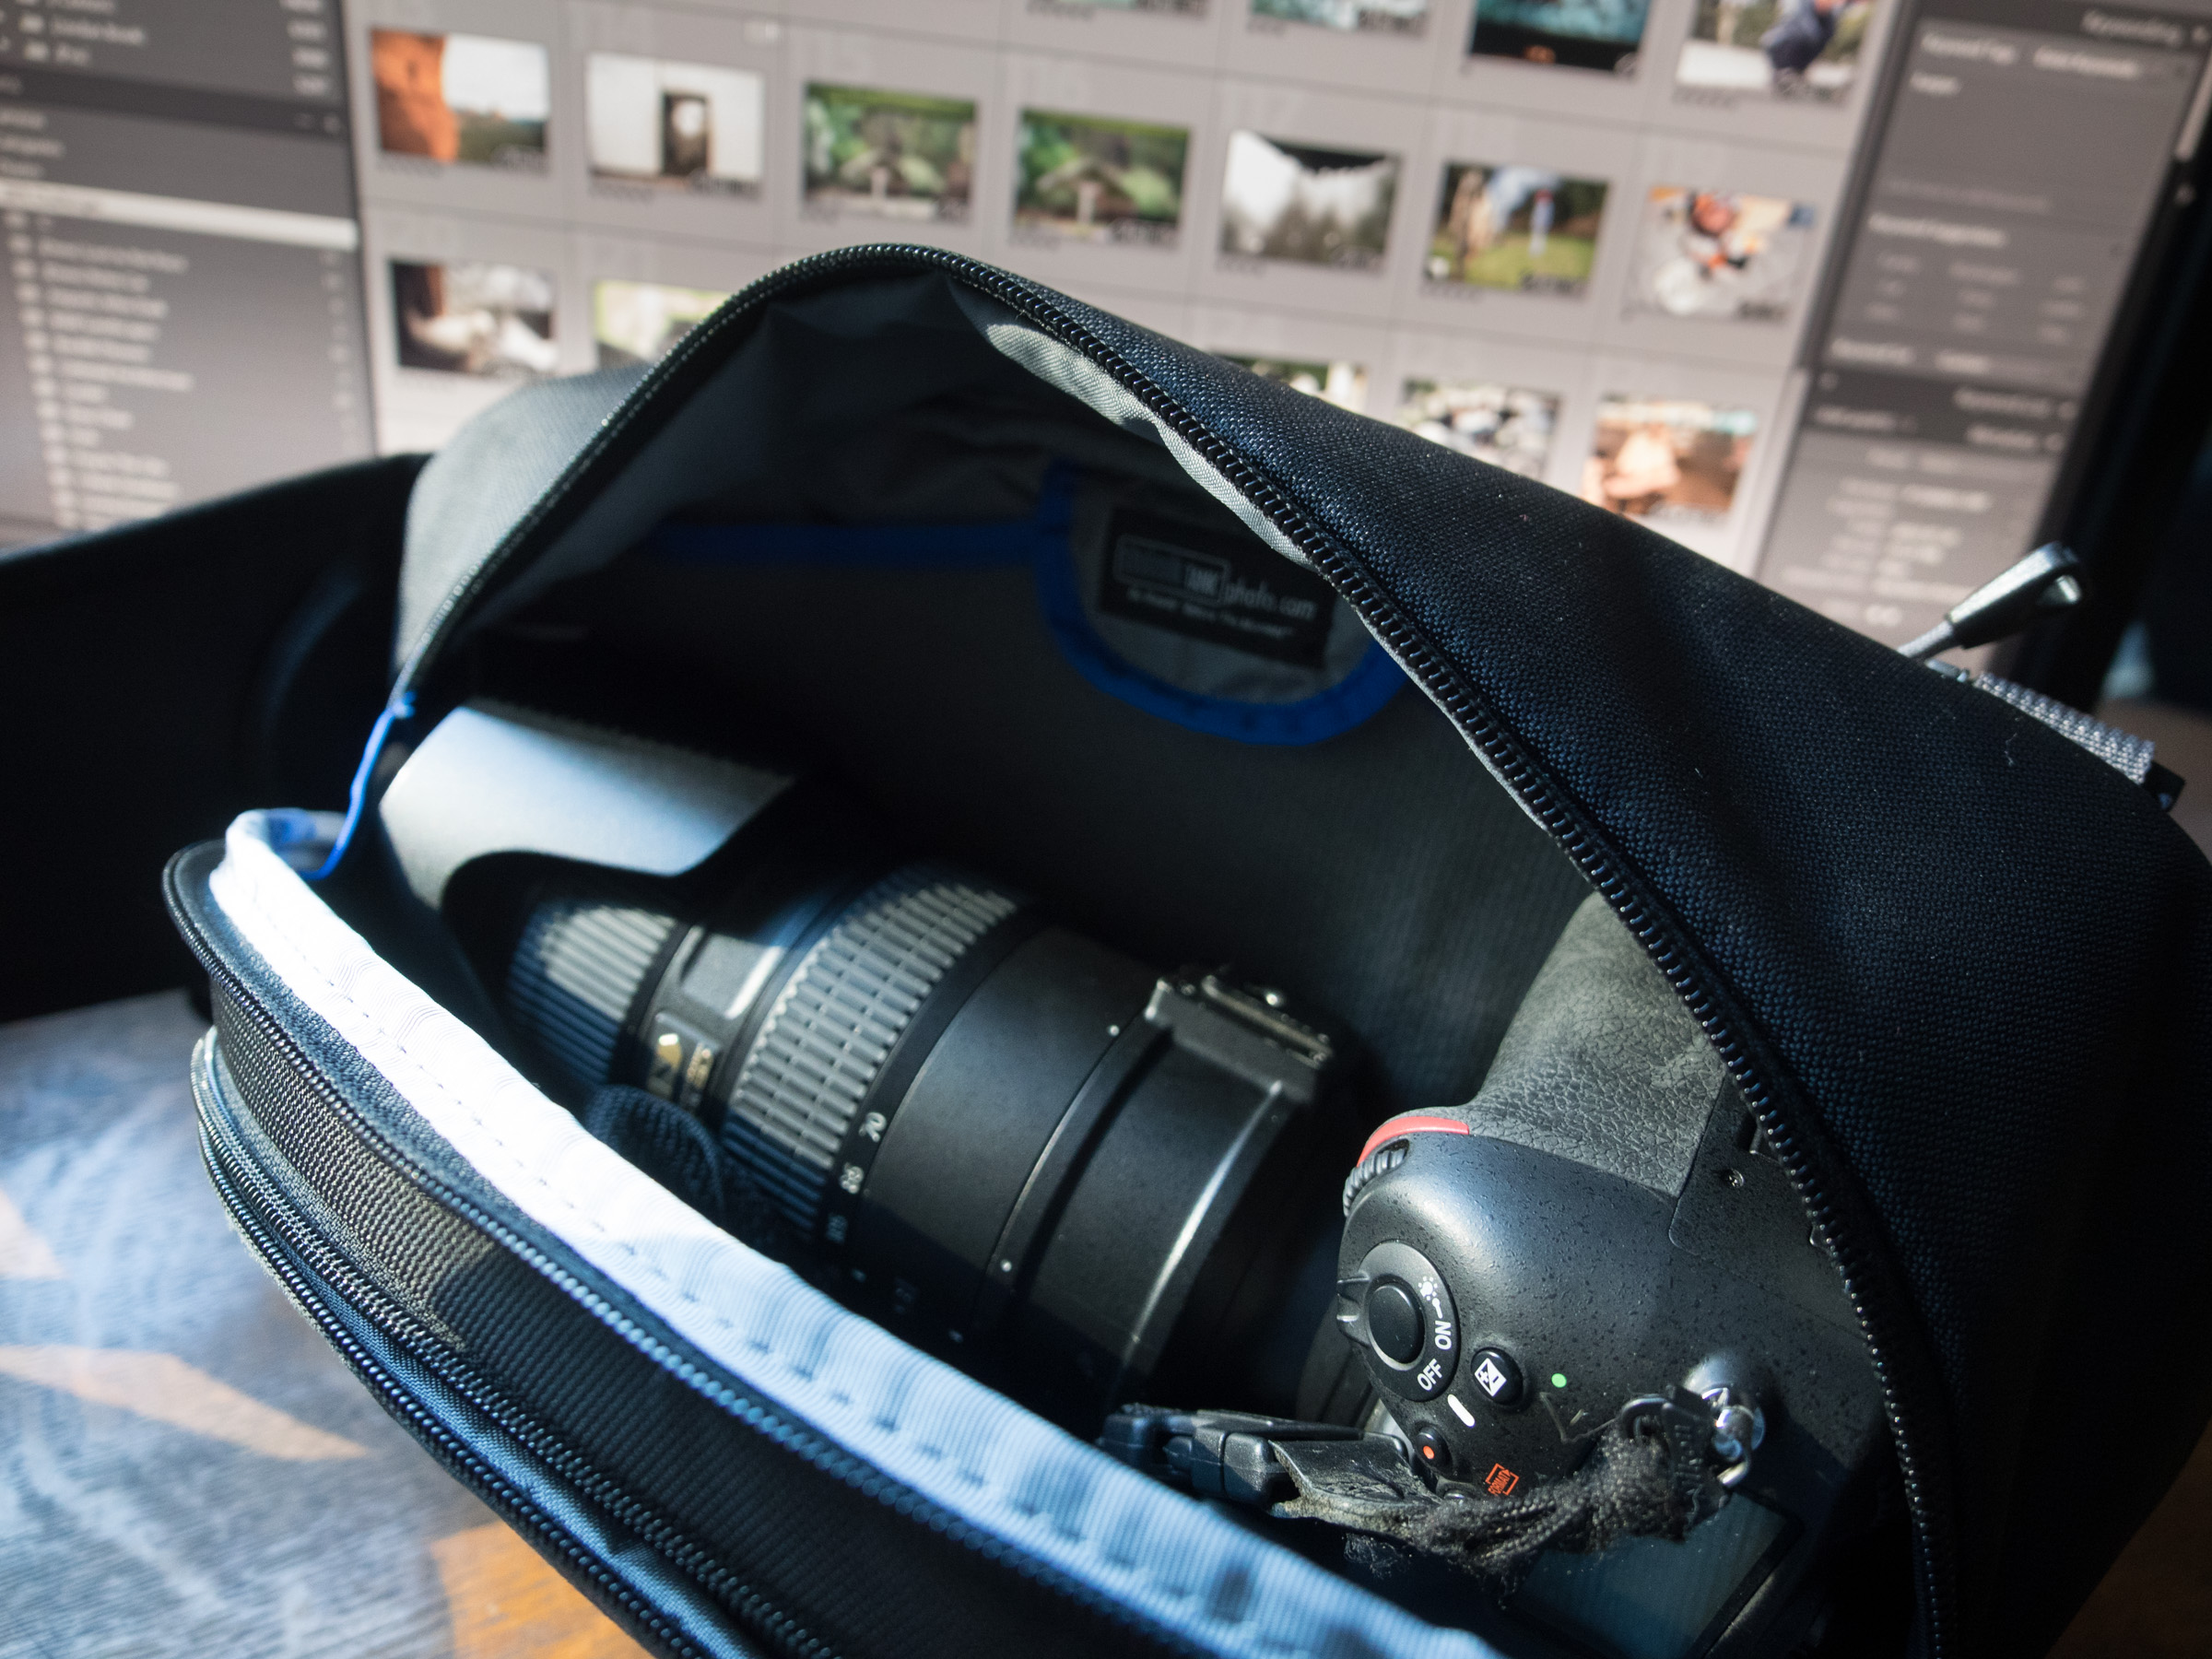 Yup. Even holds the D800 with 70-200 f/2.8 VRII.  Sweet.